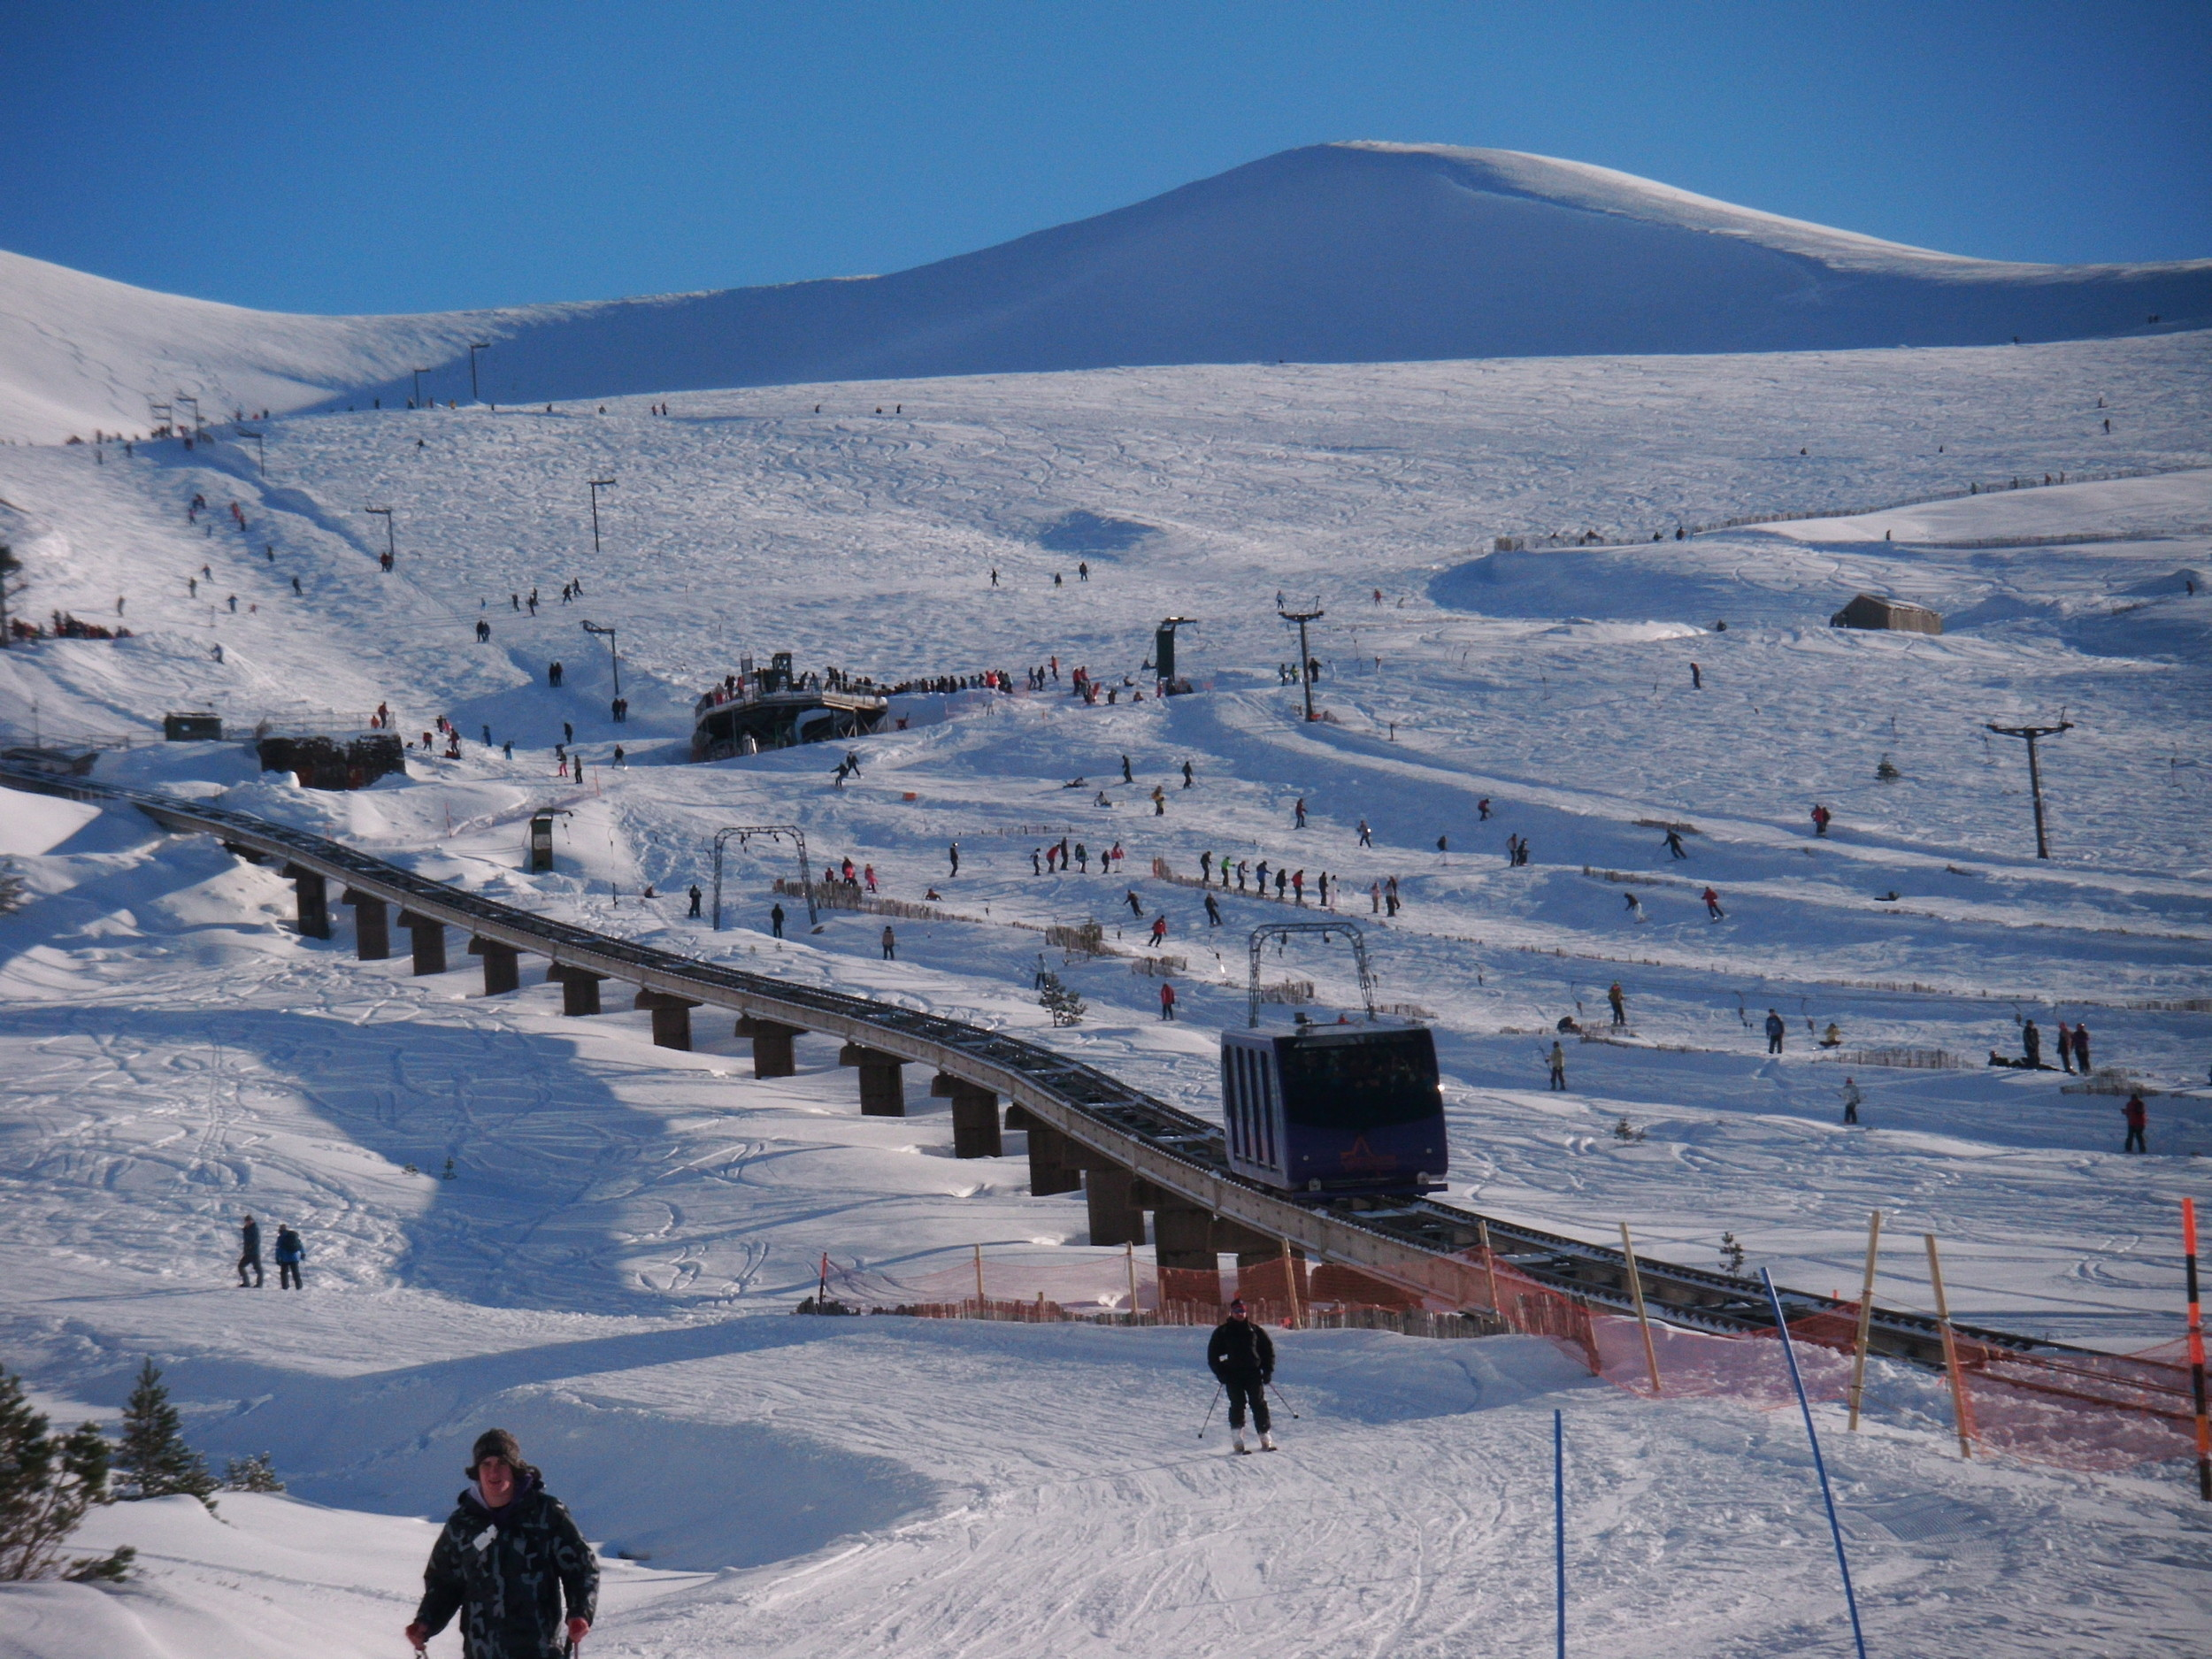 cairngorm ski resort - cairngorm snow report & ski lift passes